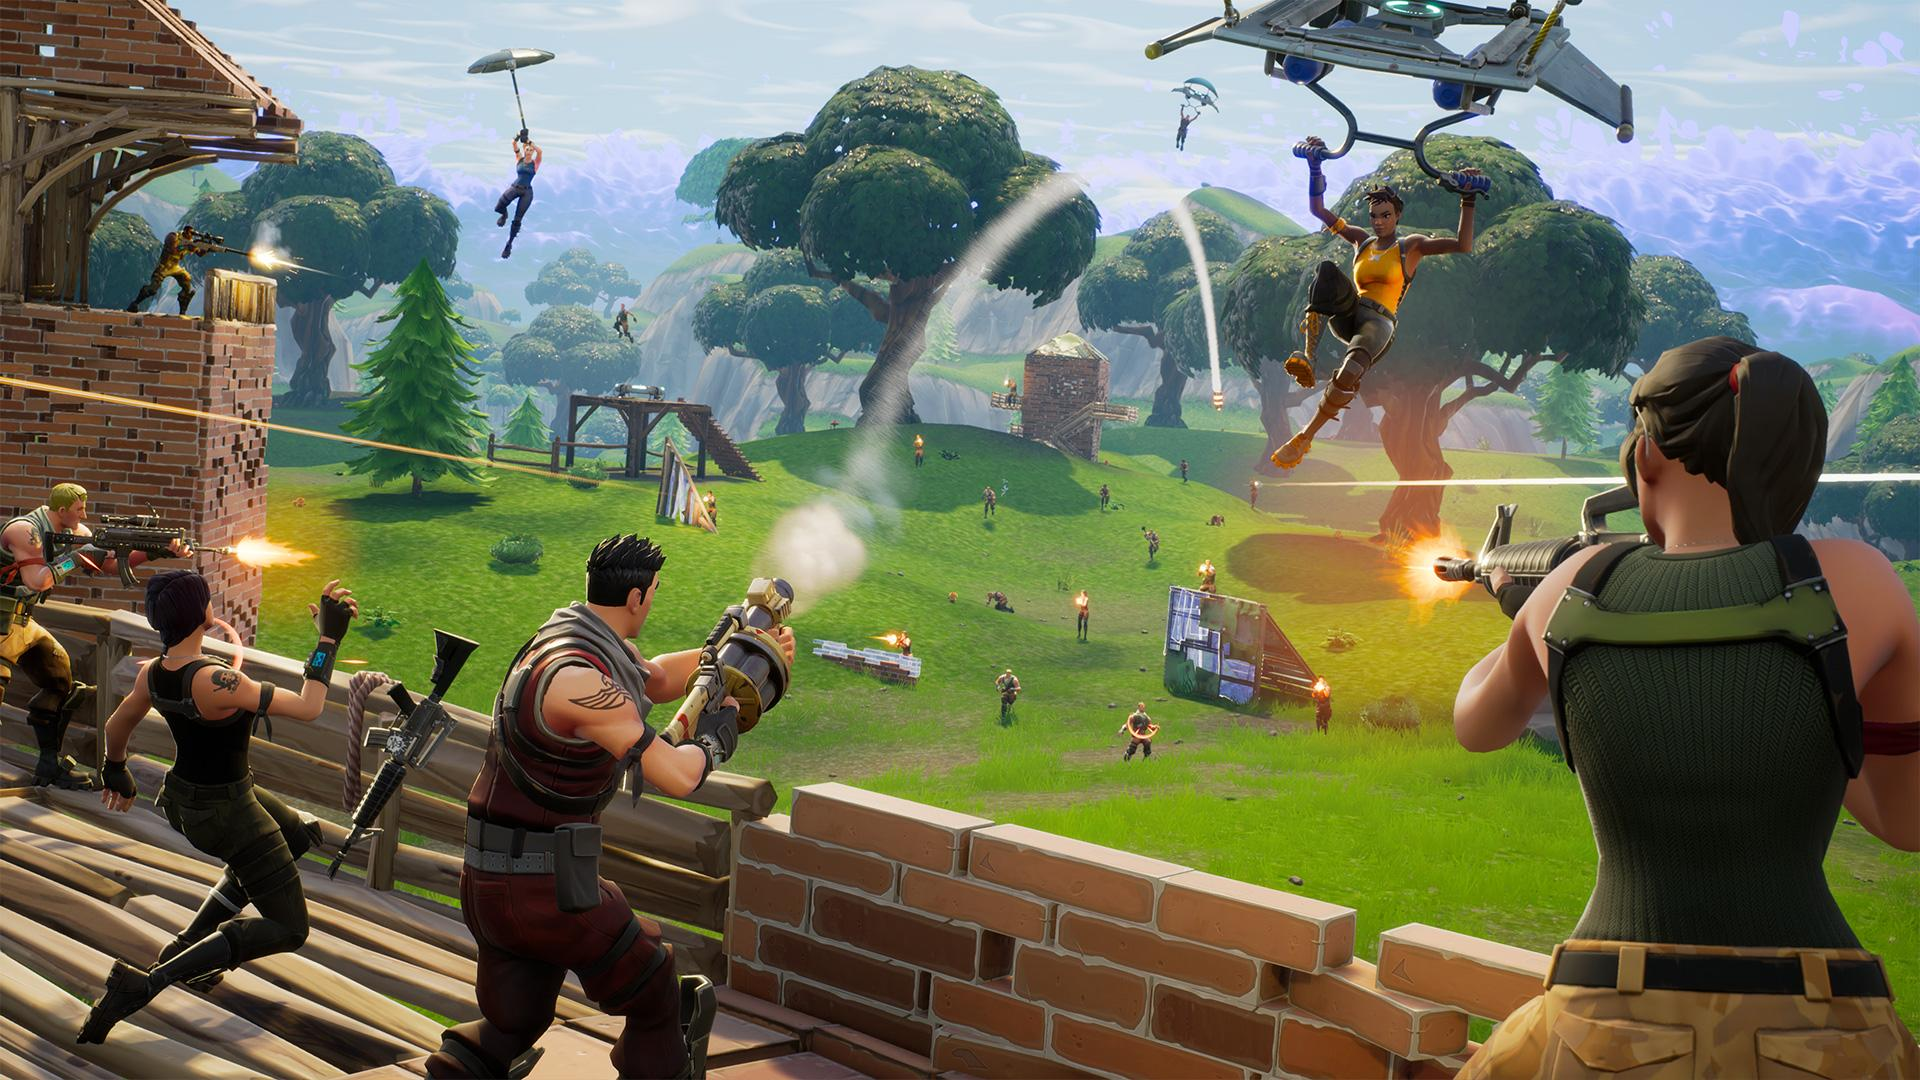 Fortnite Sound Not Working Pc sick of getting schooled in fortnite? here's what happened